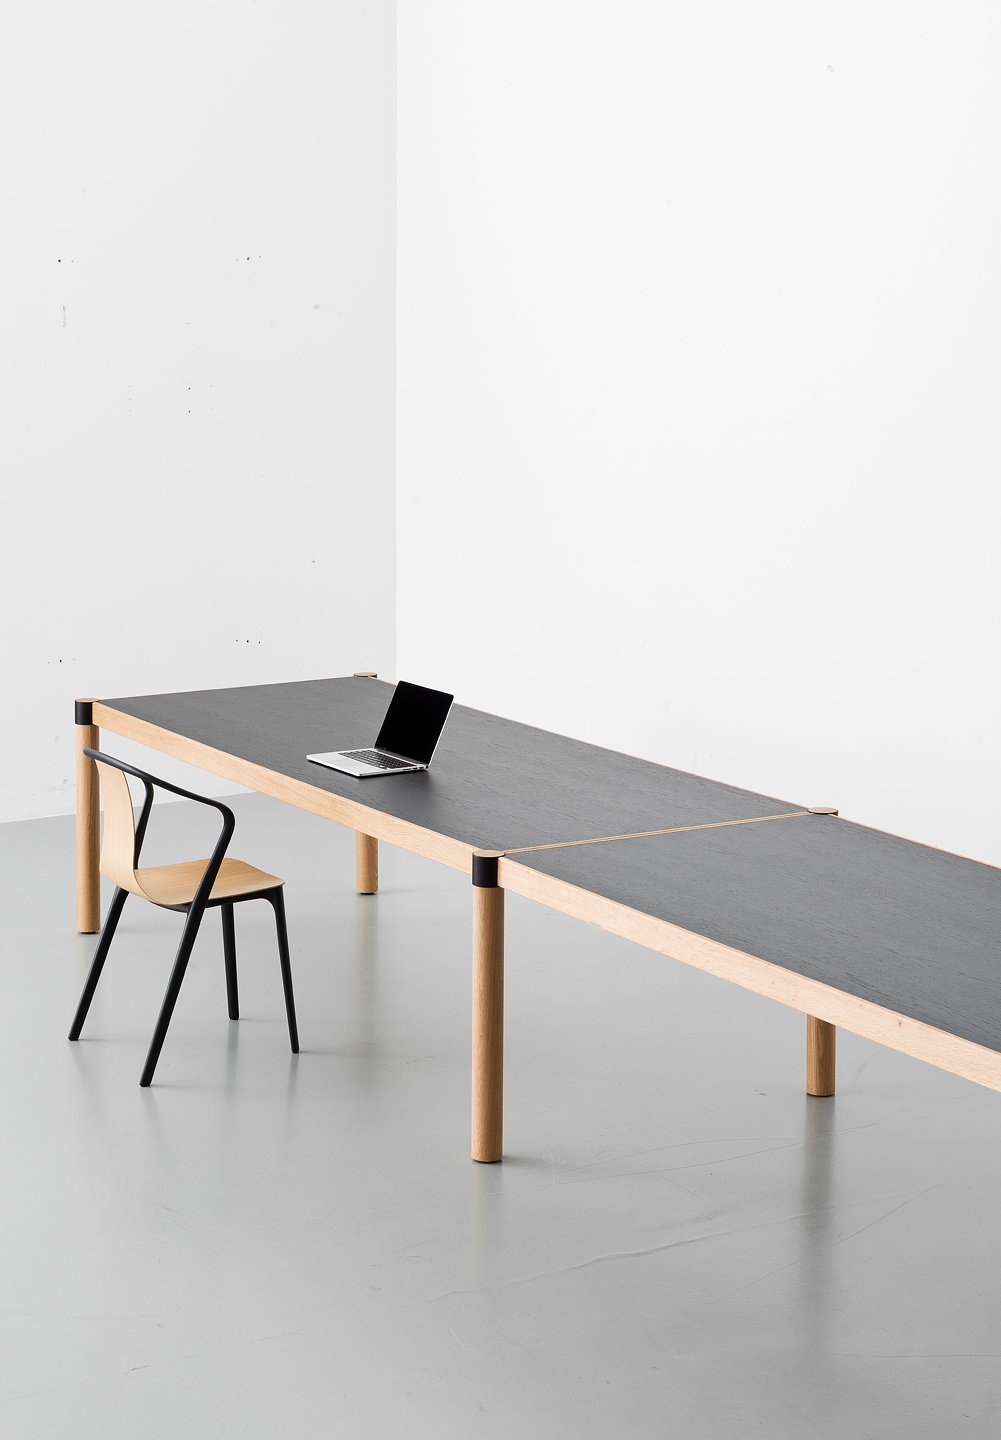 Ronan Erwan Bouroullec Create Cyl System For Vitra